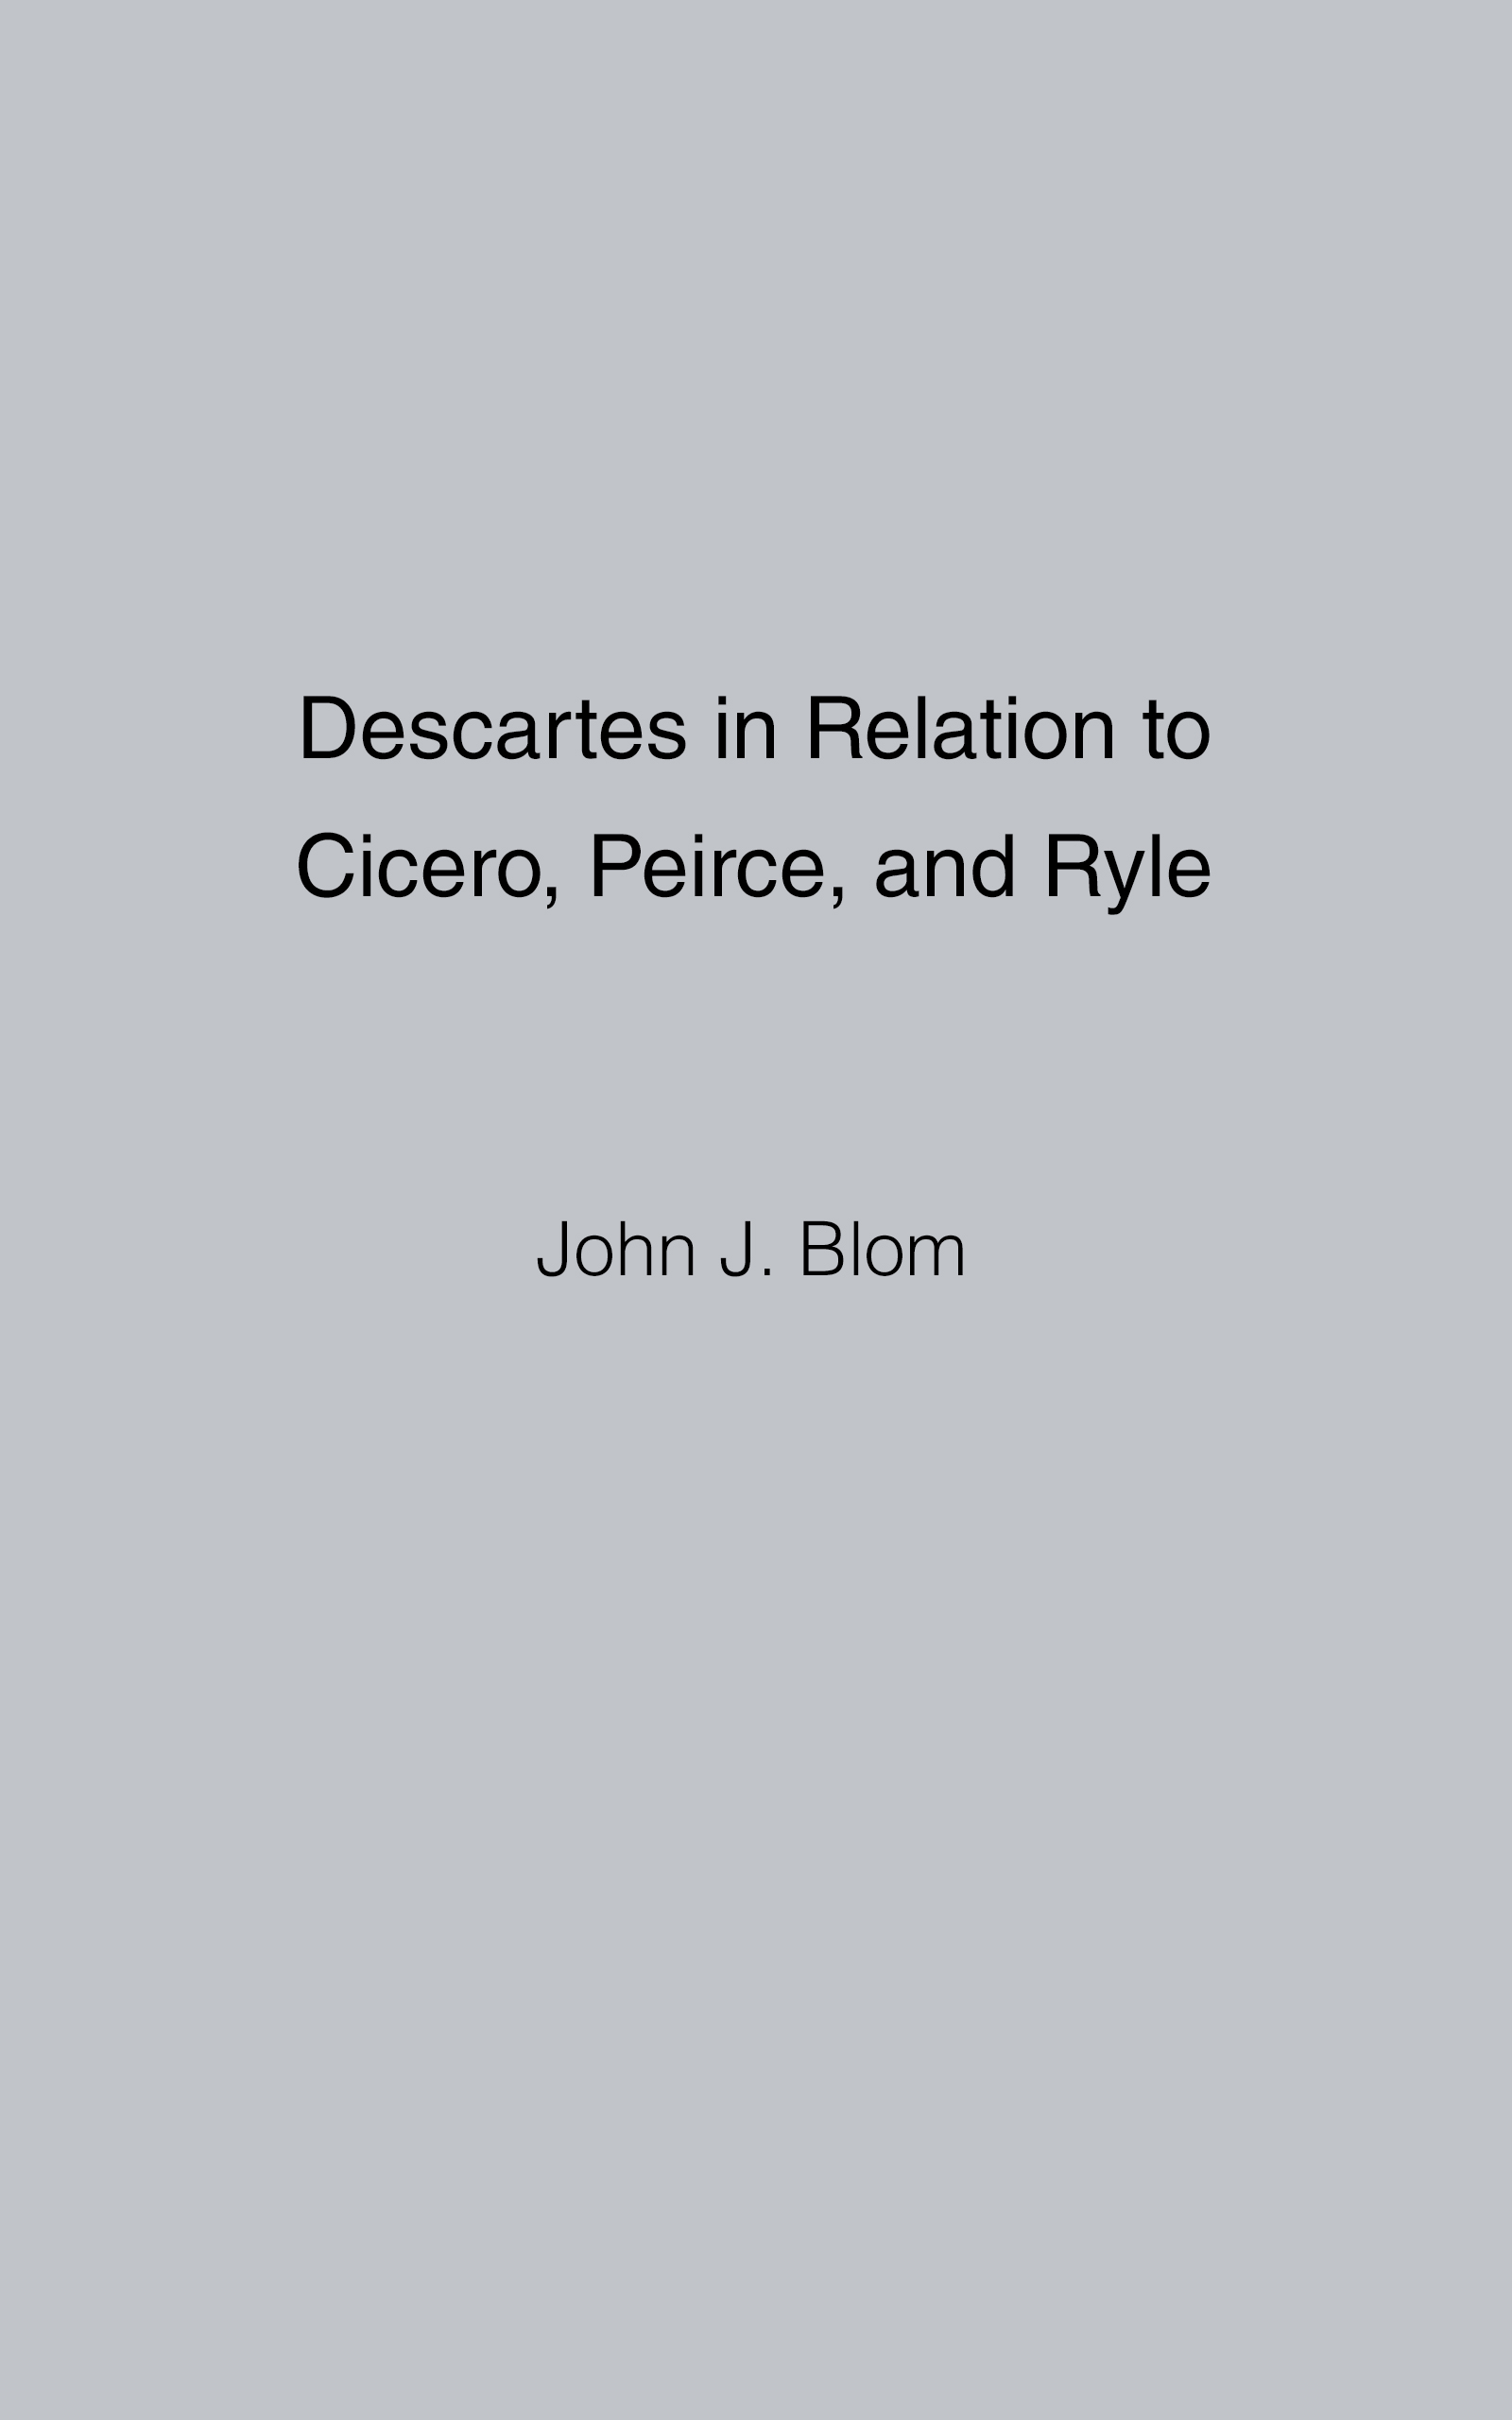 Descartes in Relation to Cicero, Peirce, and Ryle, an Ebook by John Blom